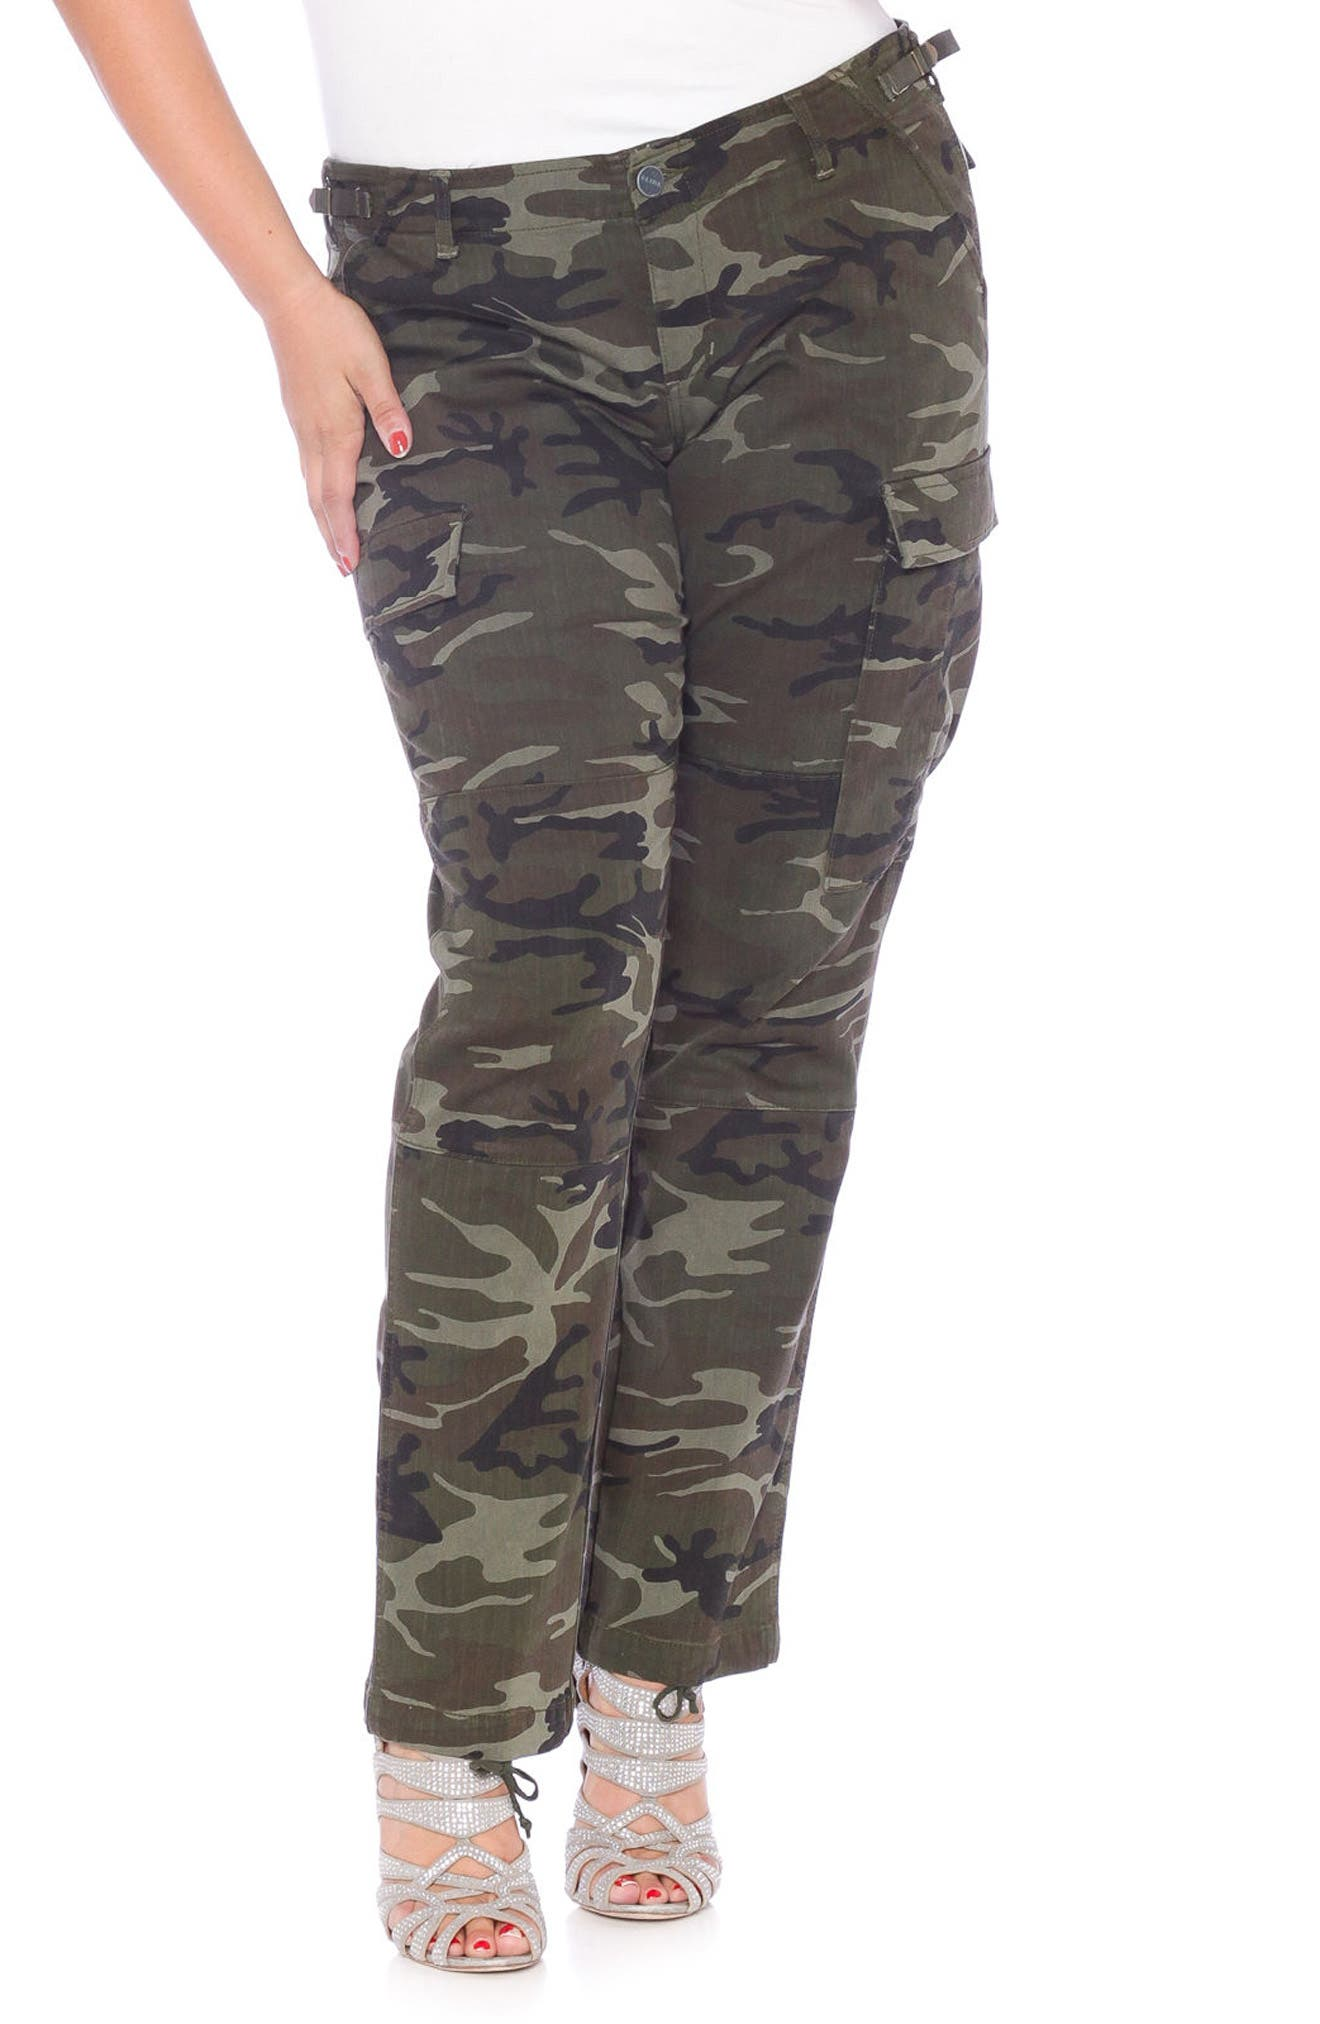 SLINK Jeans Camo Twill Cargo Pants (Plus Size)